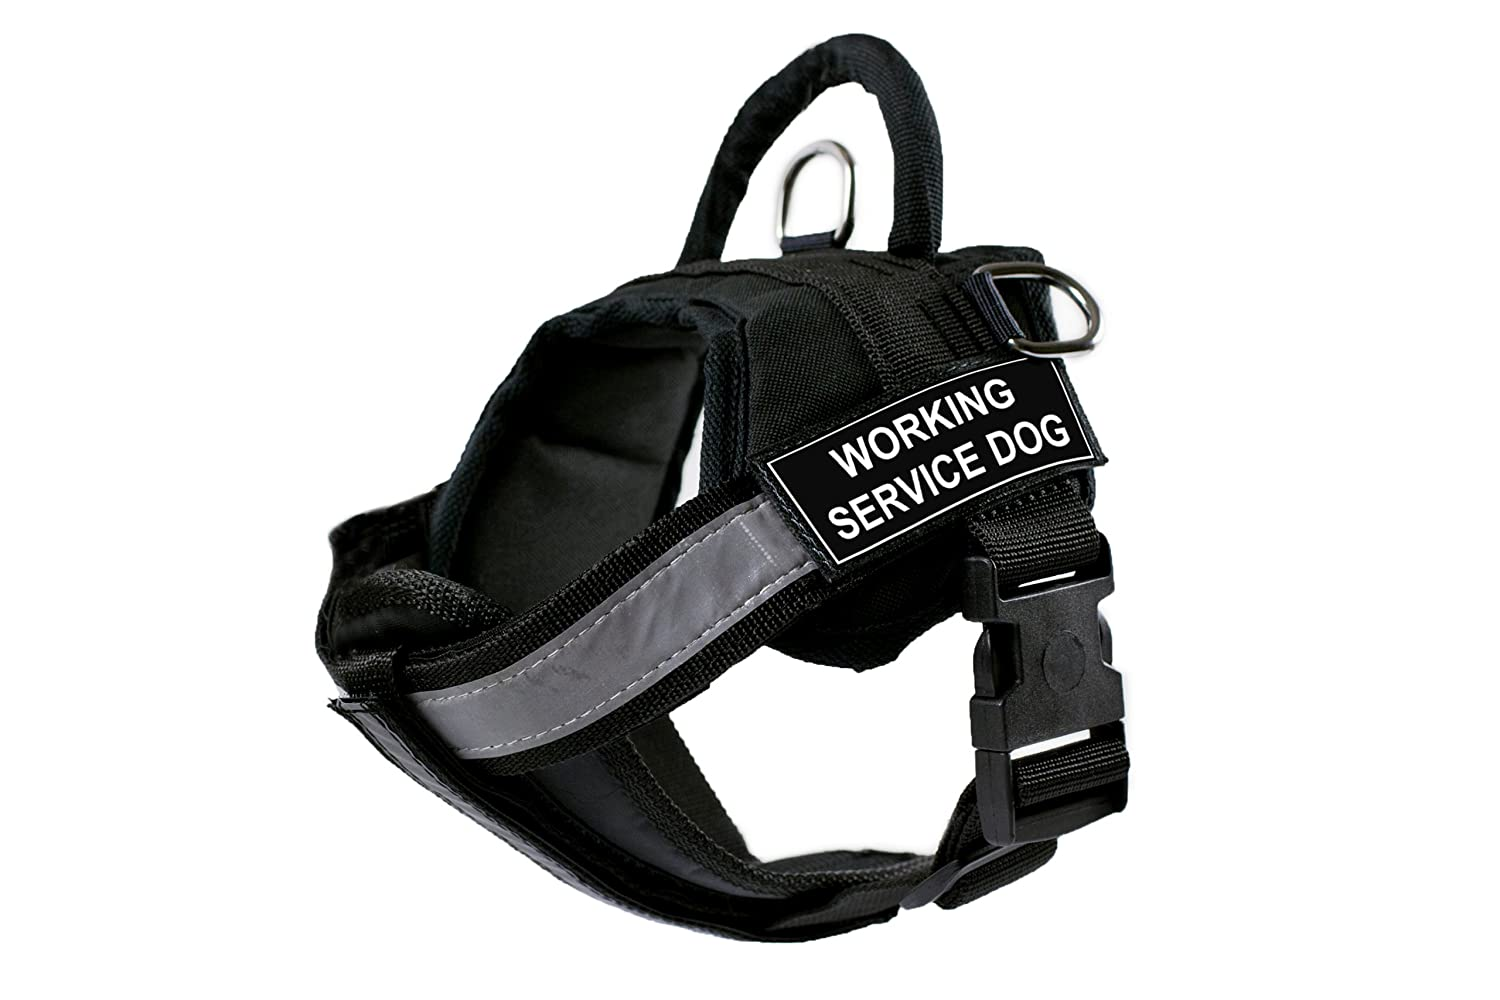 DT Works Harness with Padded Reflective Chest Straps, Working Service Dog, Black, X-Small Fits Girth Size  21-Inch to 26-Inch